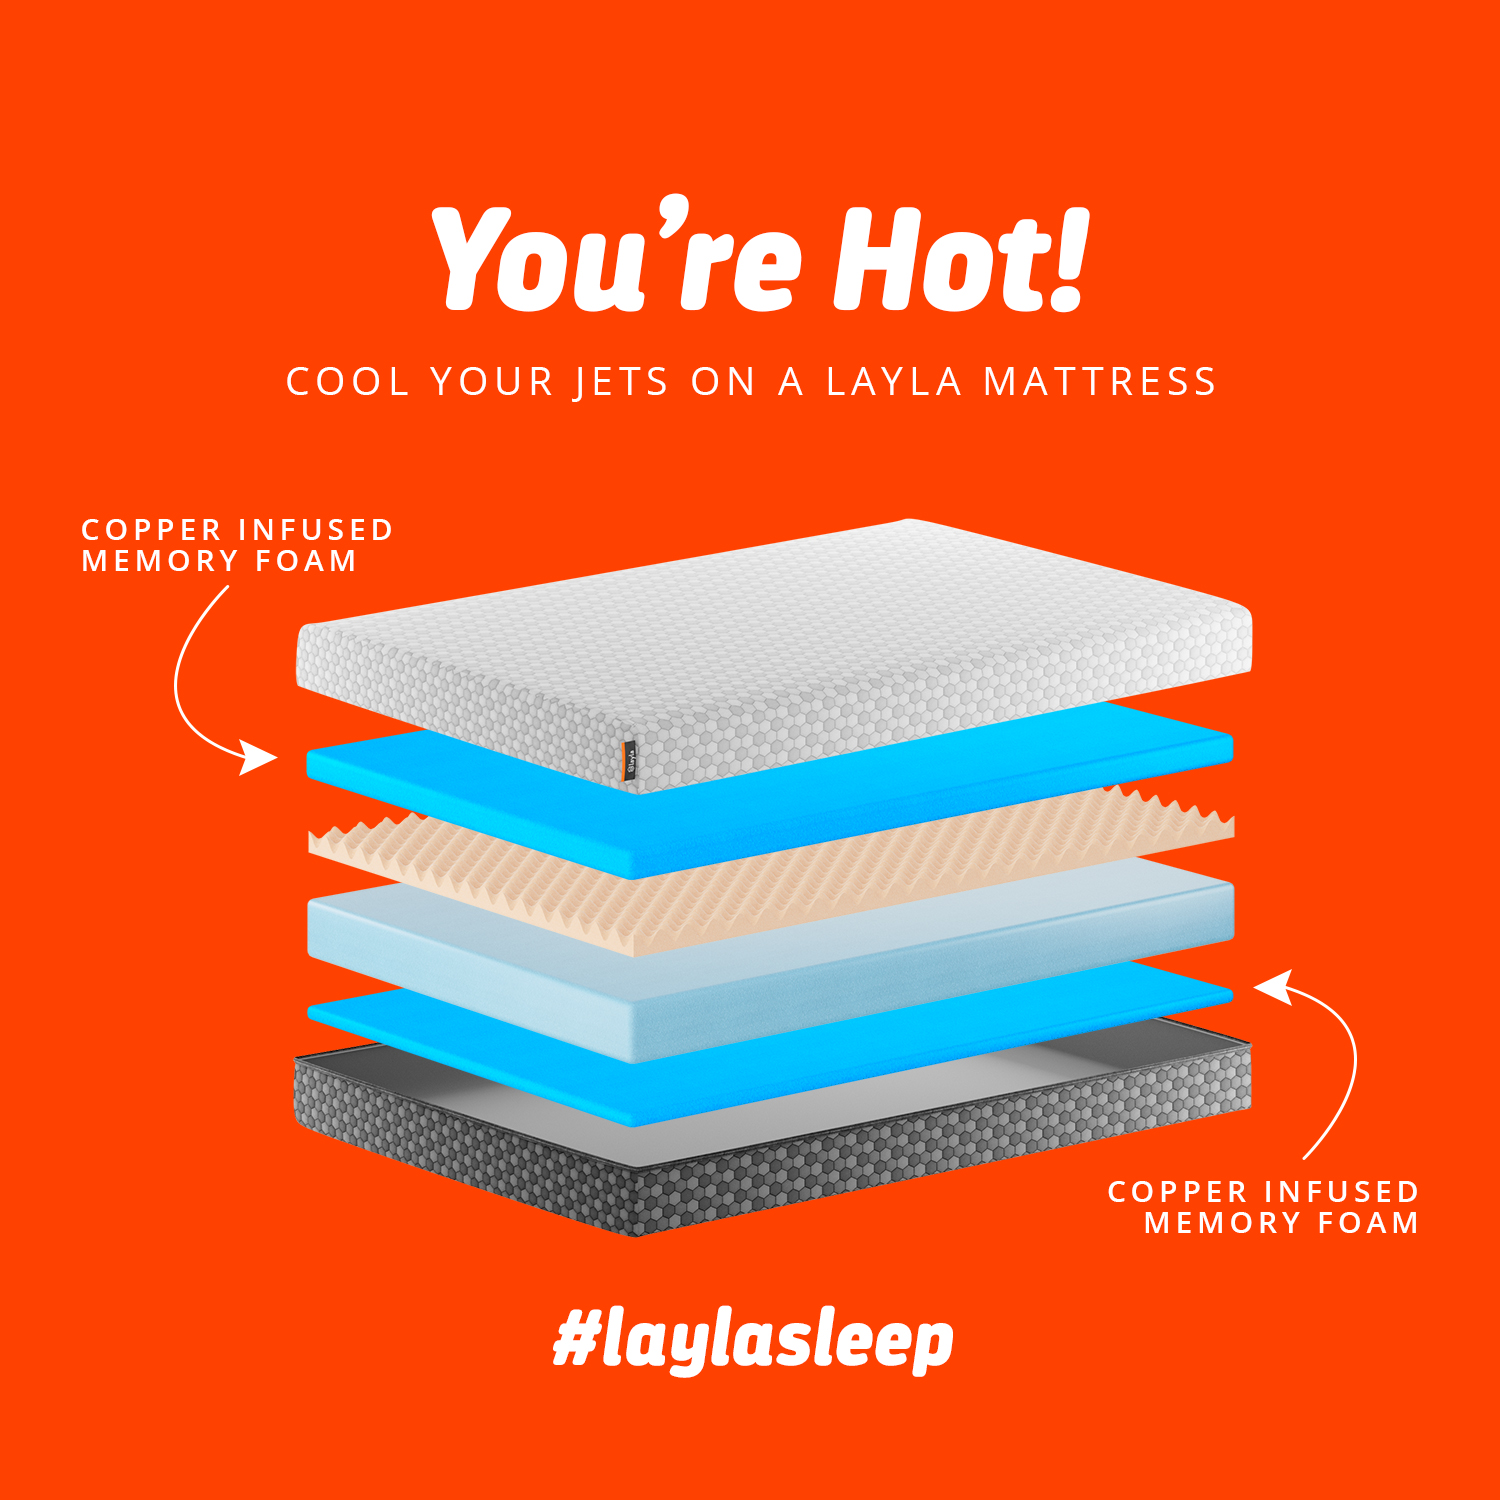 Cool your jets with a Layla Mattress.